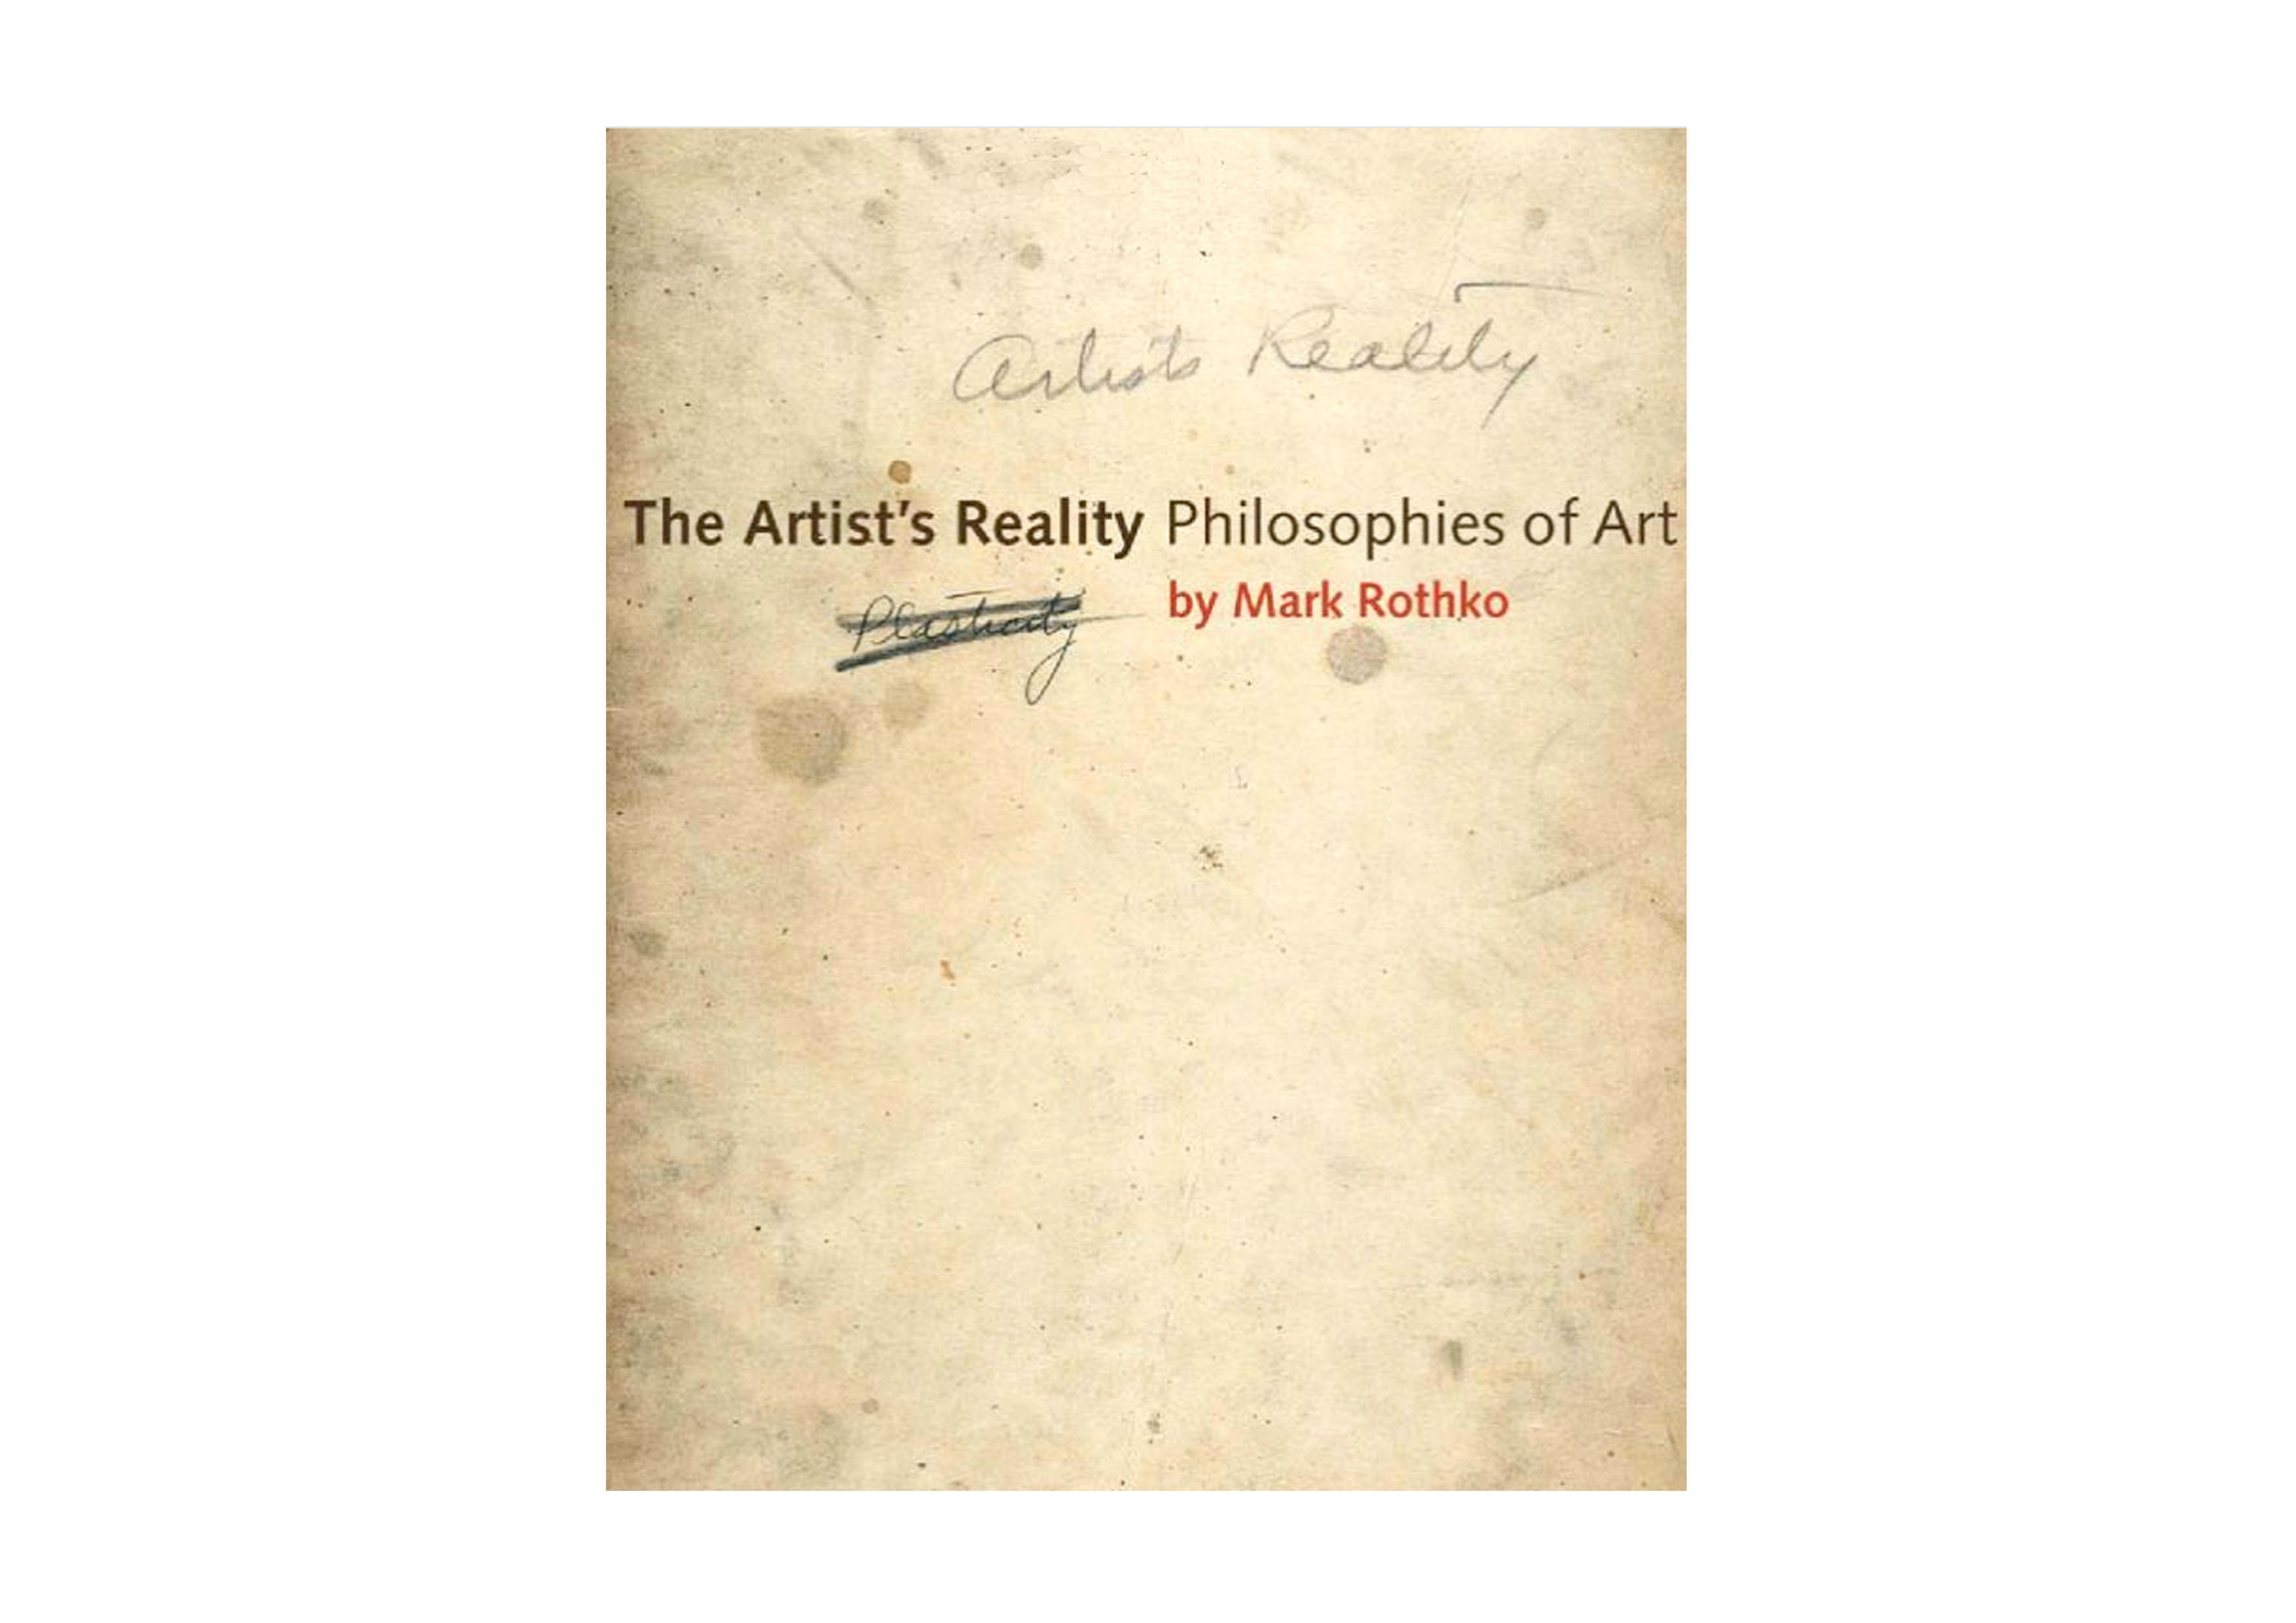 The Artist's Reality, Philosophies of Art  by Marc Rothko